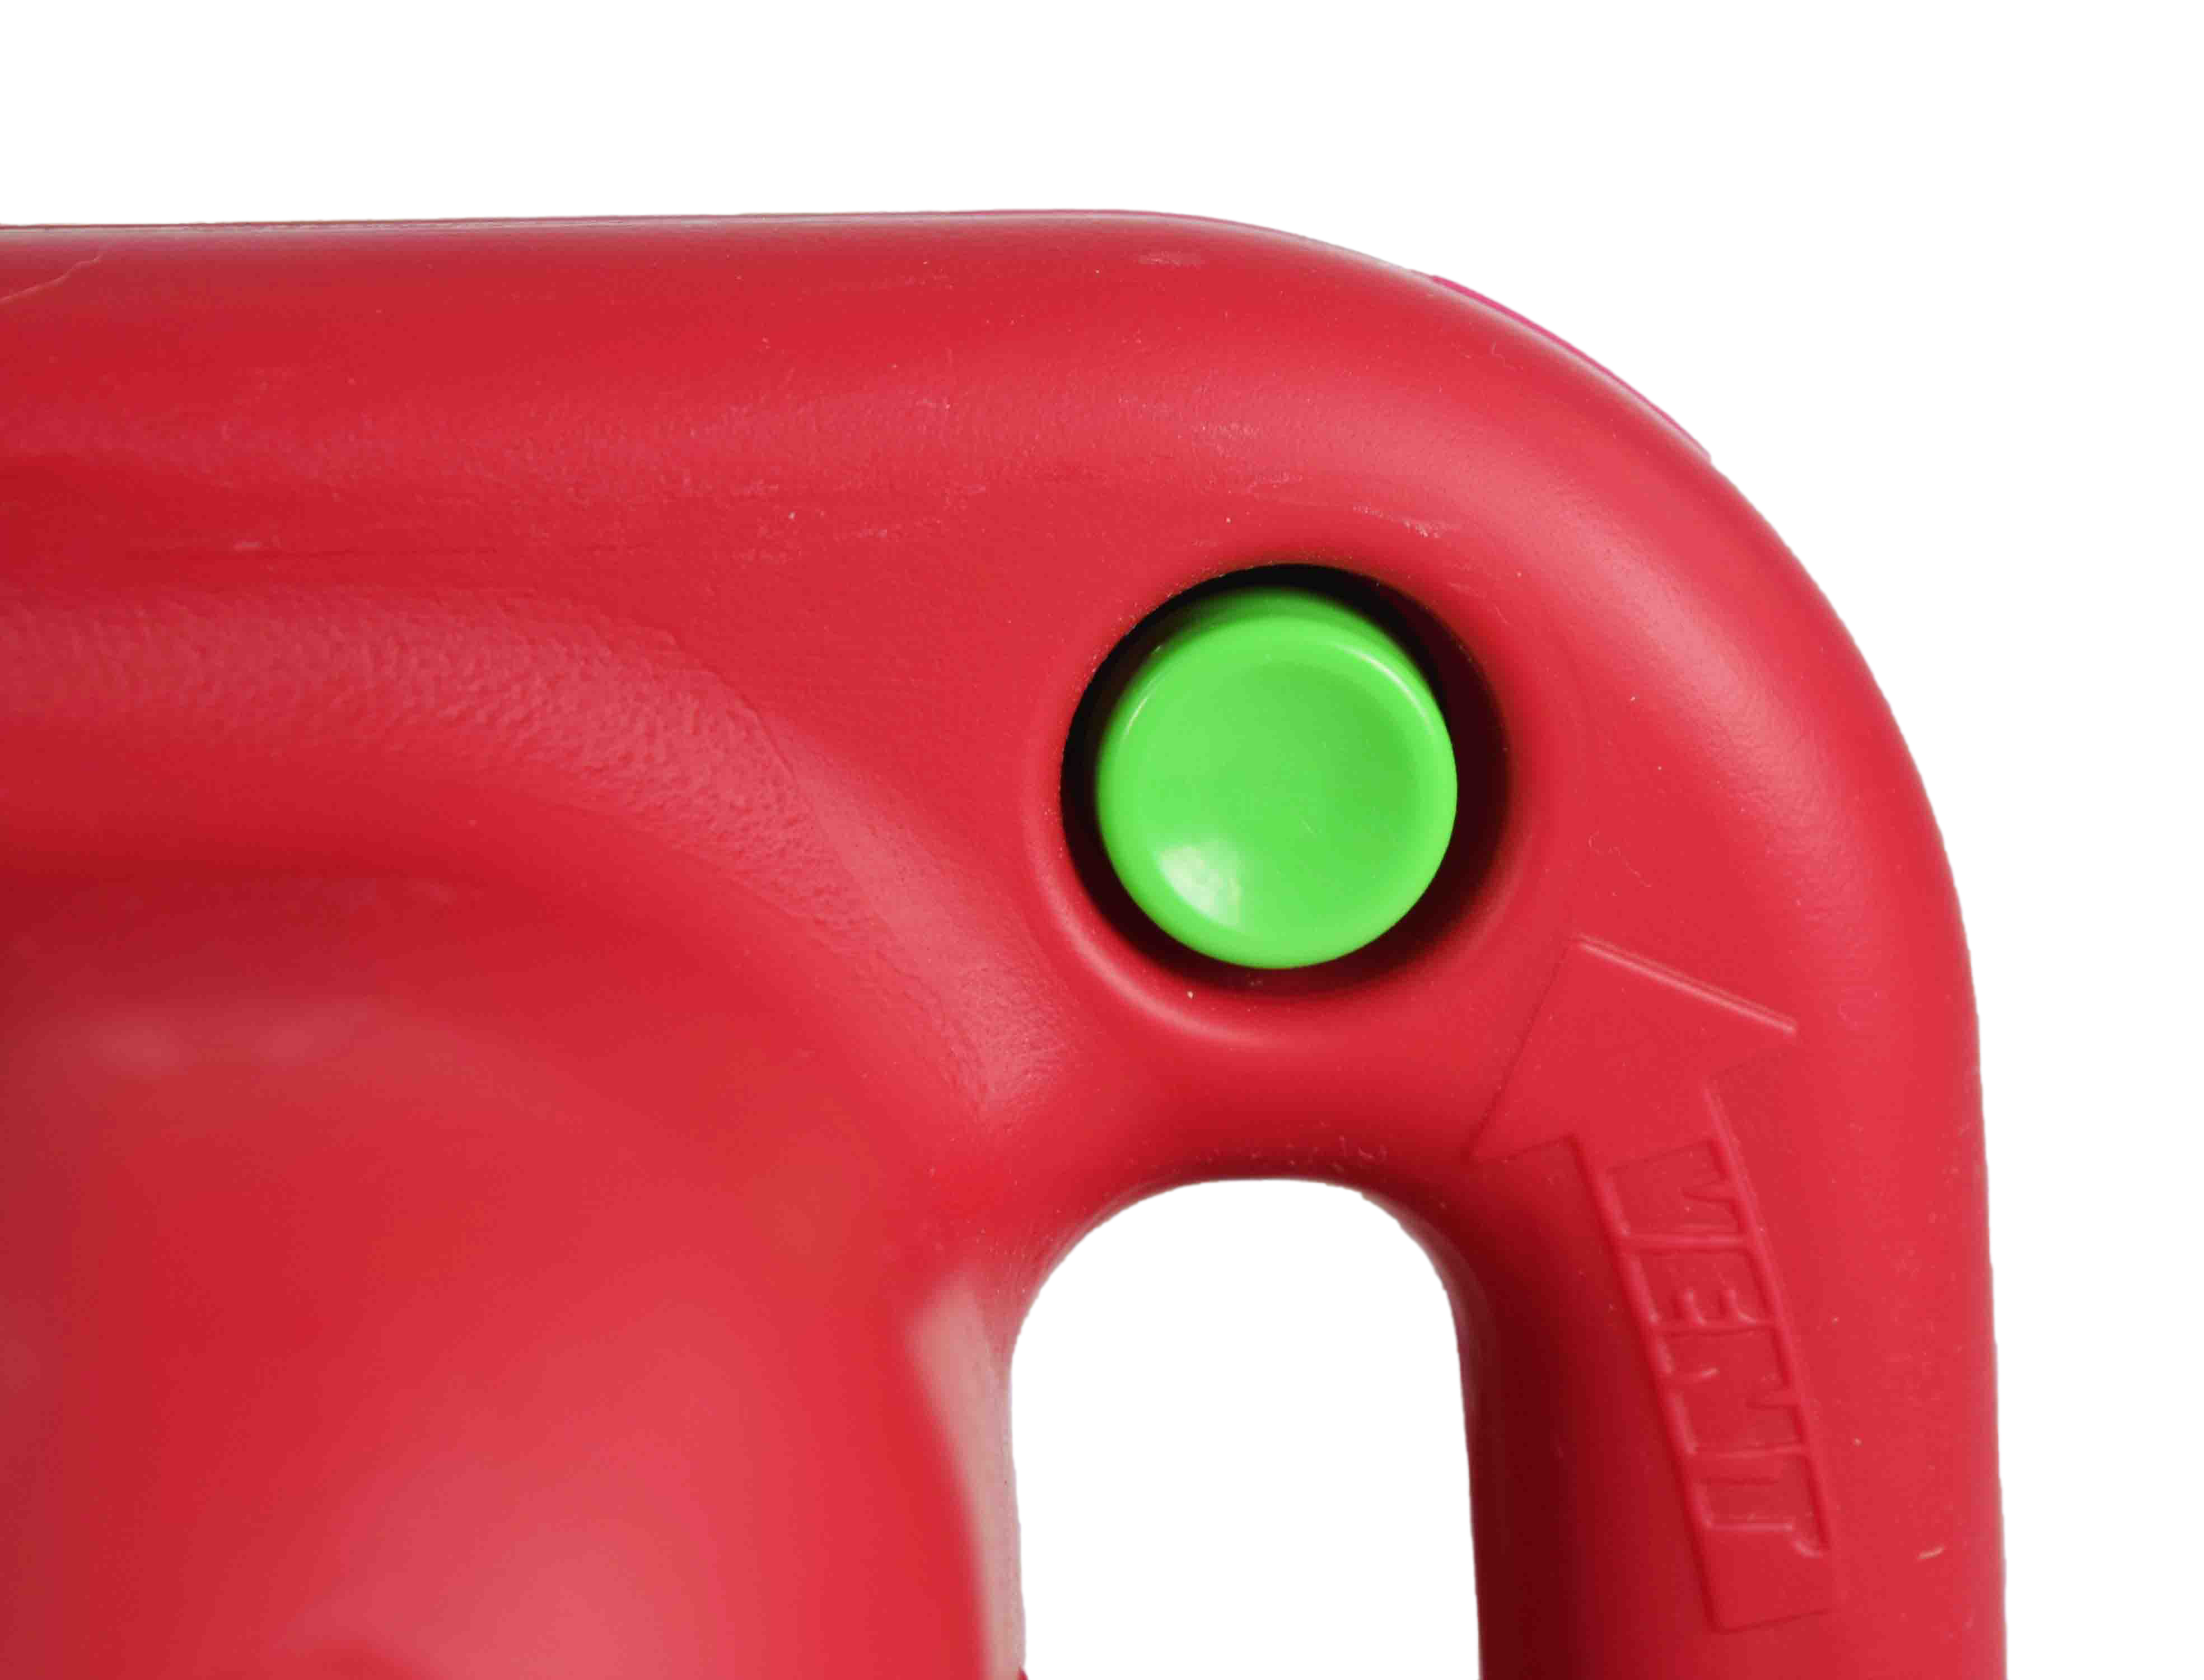 Fuelworx-Red-1.5-Gallon-Stackable-Fast-Pour-Gas-Fuel-Cans-CARB-Compliant-Made-in-The-USA-1.5-Gallon-Gas-Can-Single-image-6